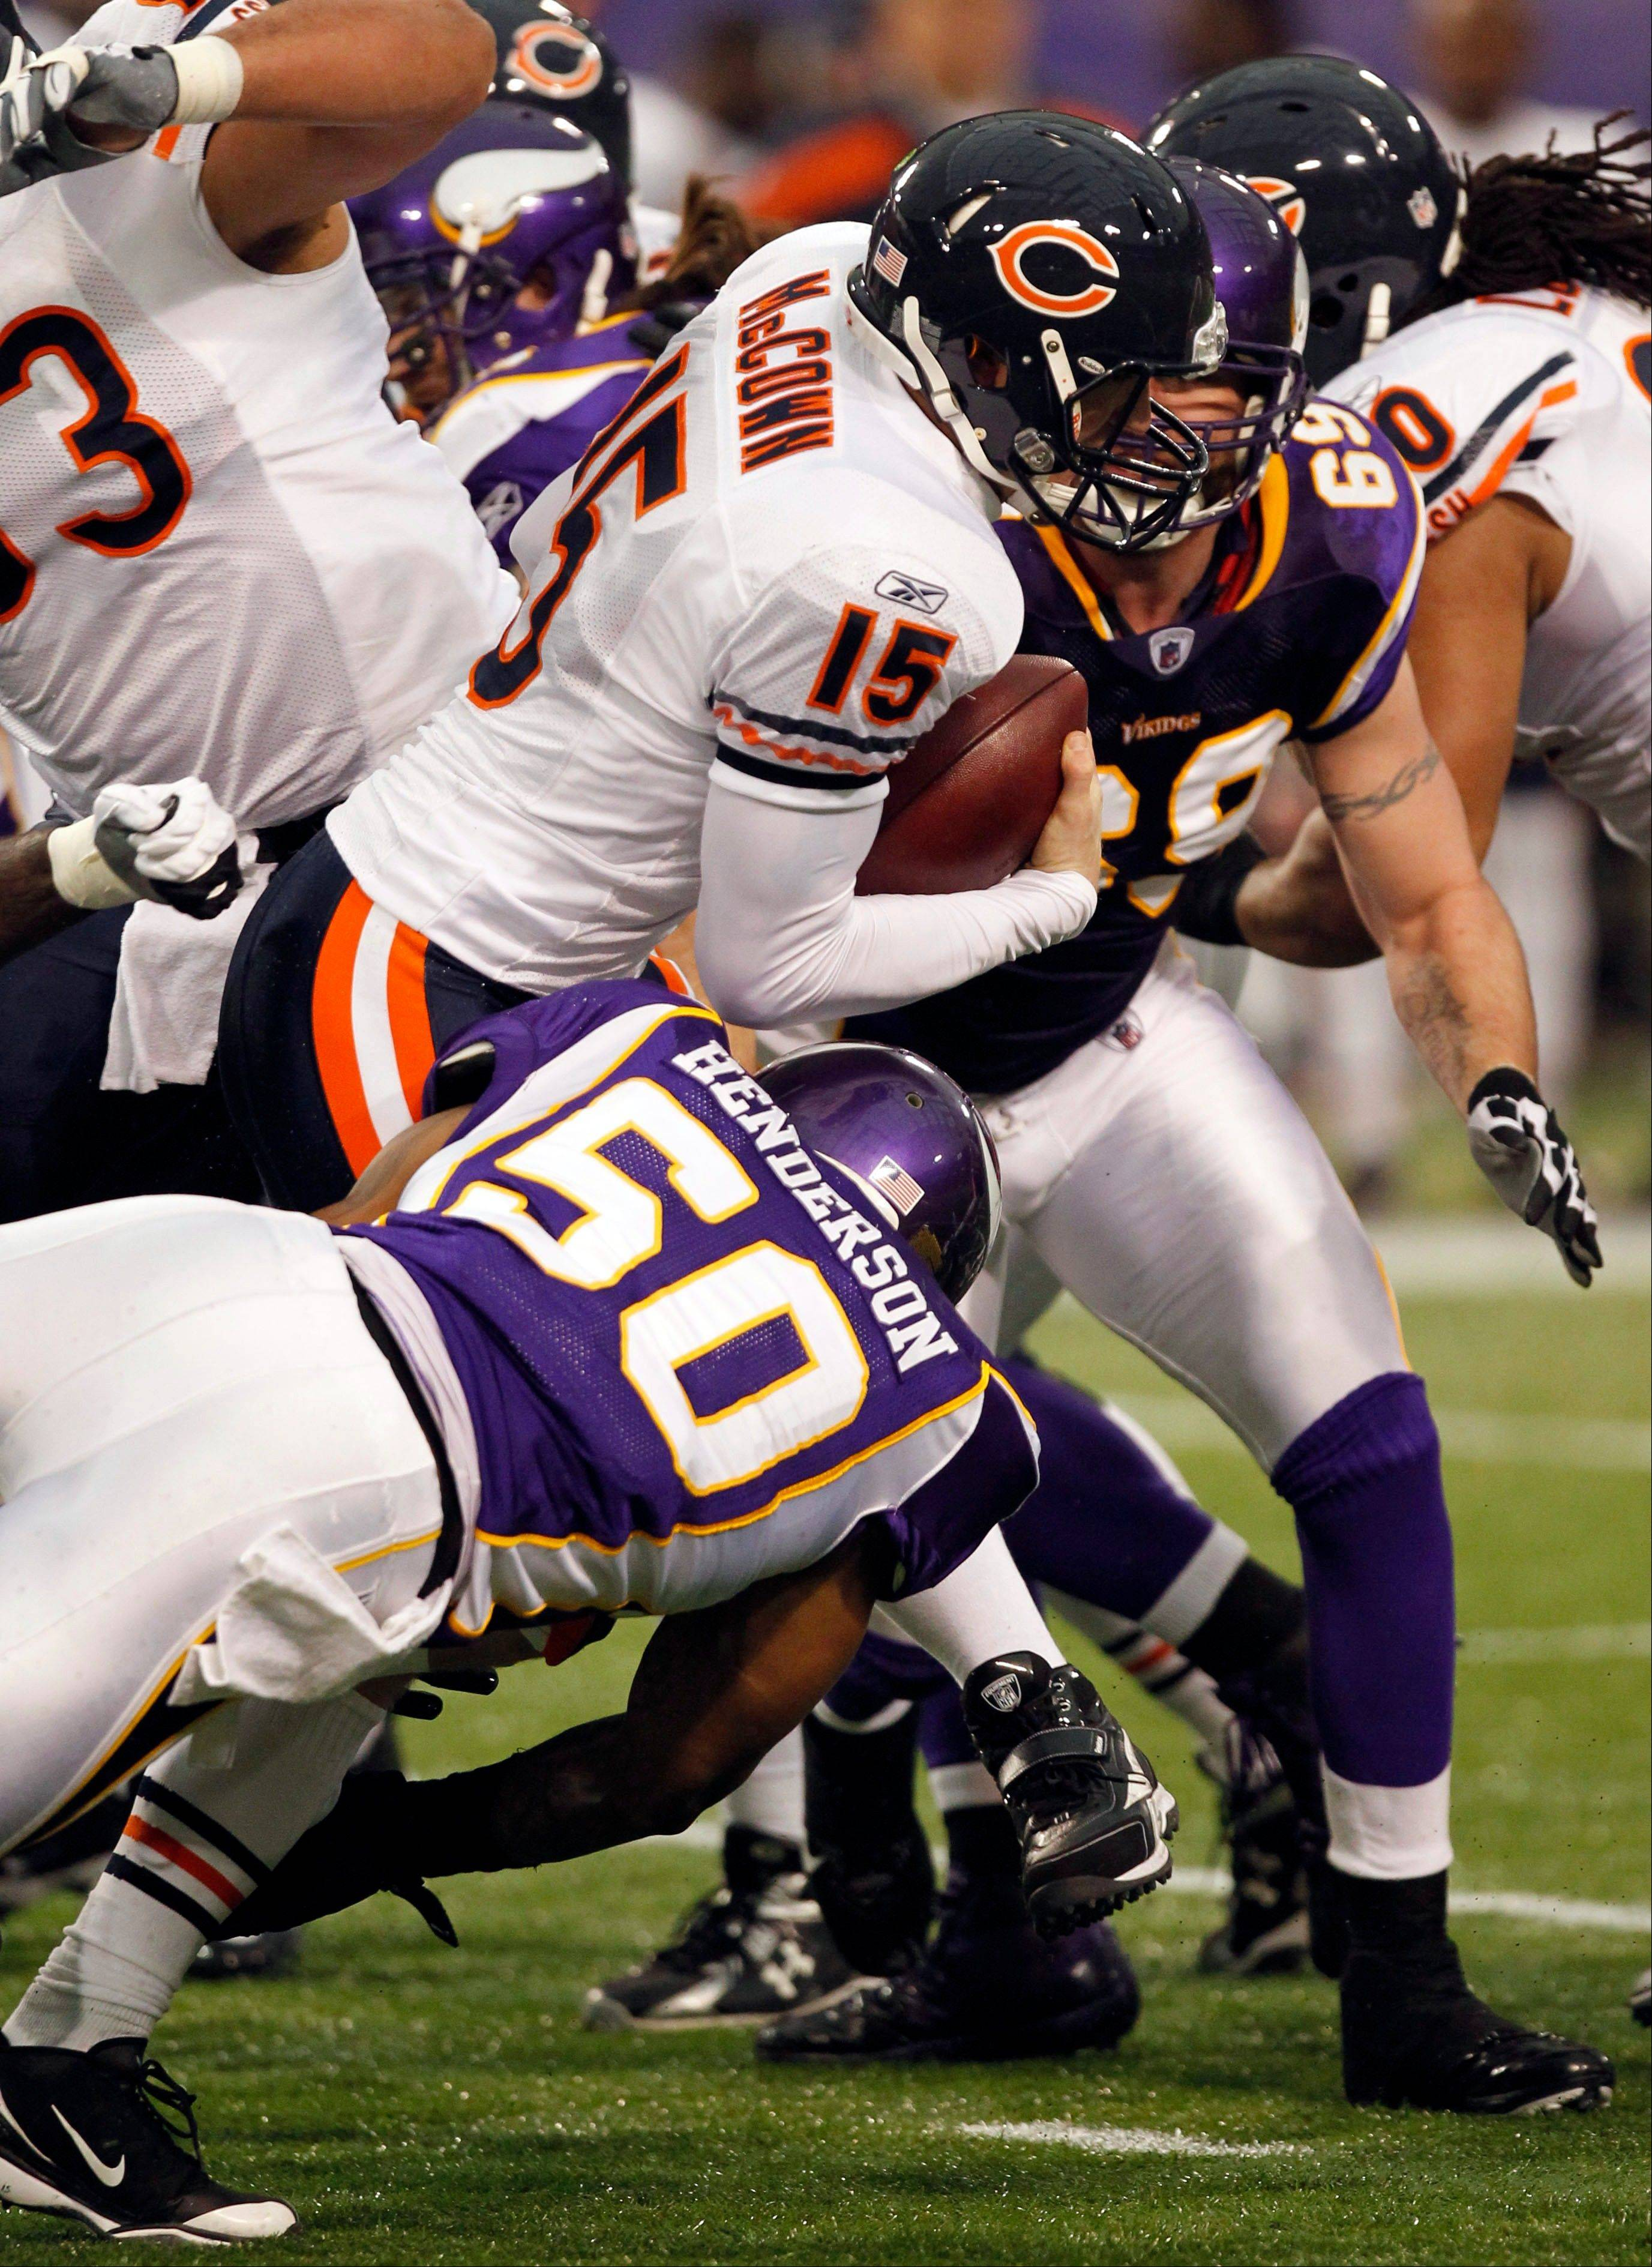 Bears quarterback Josh McCown gets sacked by Minnesota Vikings outside linebacker Erin Henderson (50) and defensive end Jared Allen (69) last season. After tying for the NFL lead with 50 sacks last year, the Vikings have slipped a bit. They're tied for 11th in the league with 26.